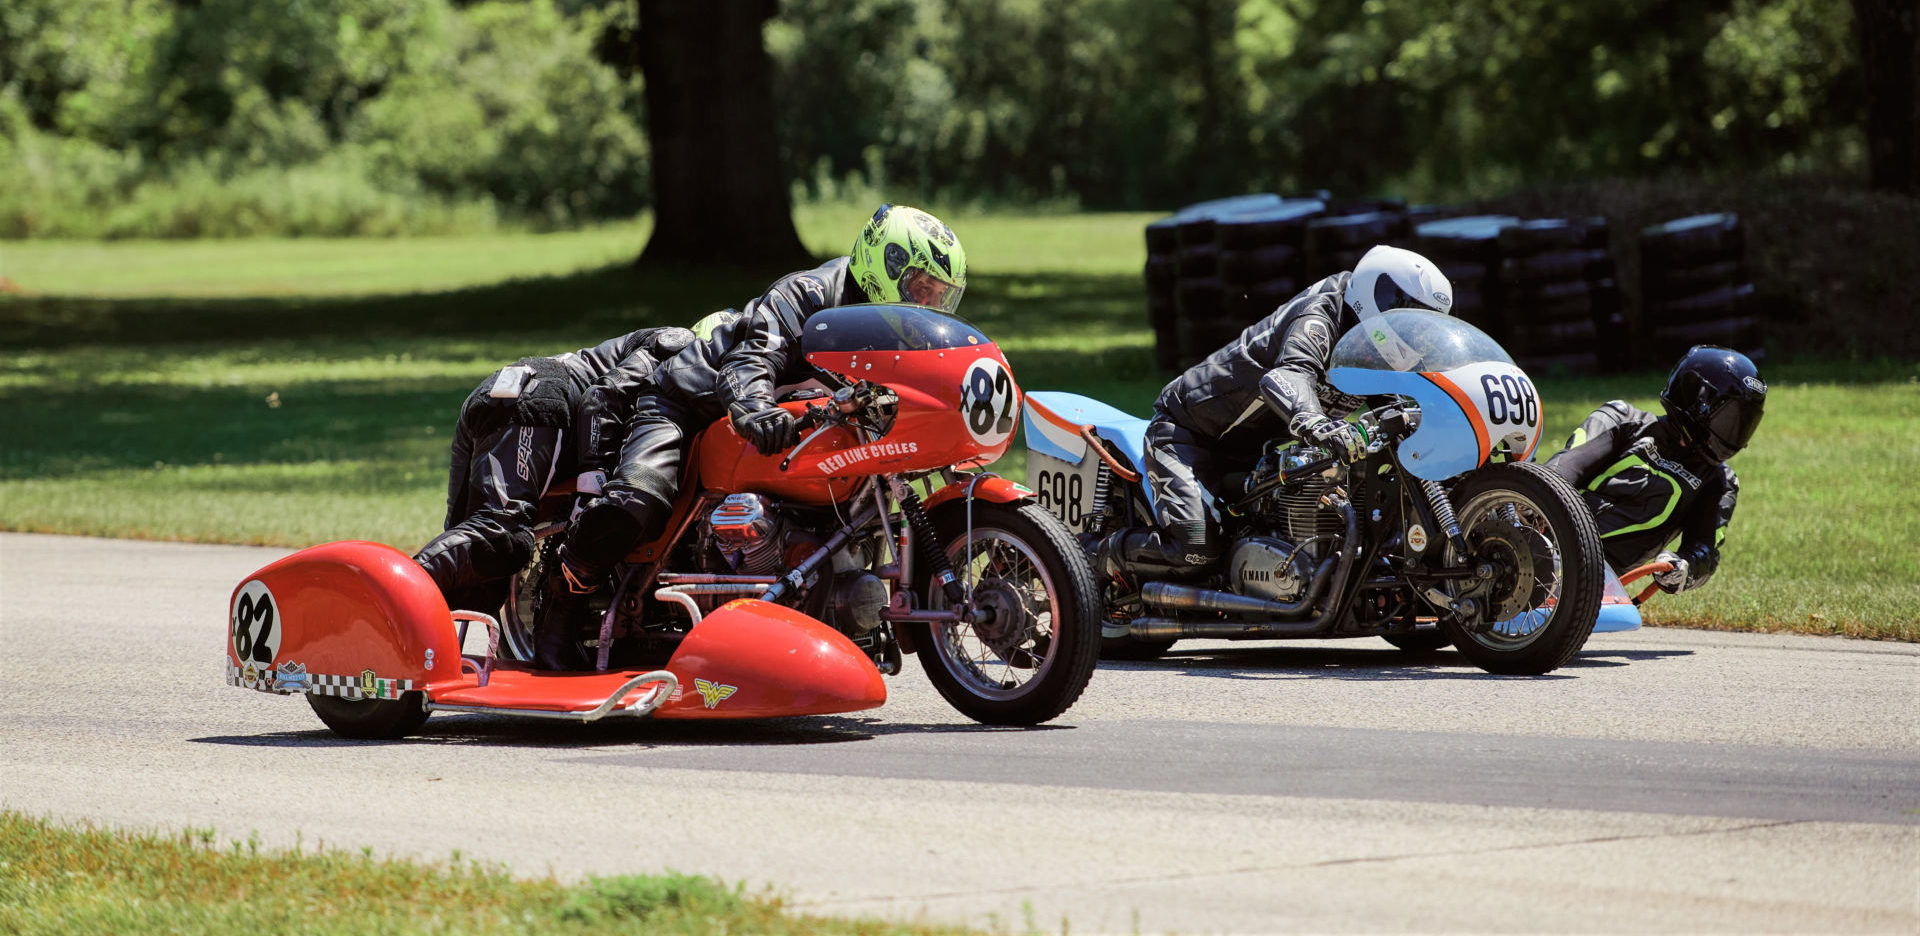 Eric Trosper and passenger Celia Trosper, riding their Loud Valve Racing Moto Guzzi, (X82) and Brad Carlisle and passenger Eddie Neubauer, riding their Sniper Monkey Racing Yamaha, (698) race into Blackhawk Farm Raceway's Turn Five. Photo by Daniel Peter, courtesy AHRMA.